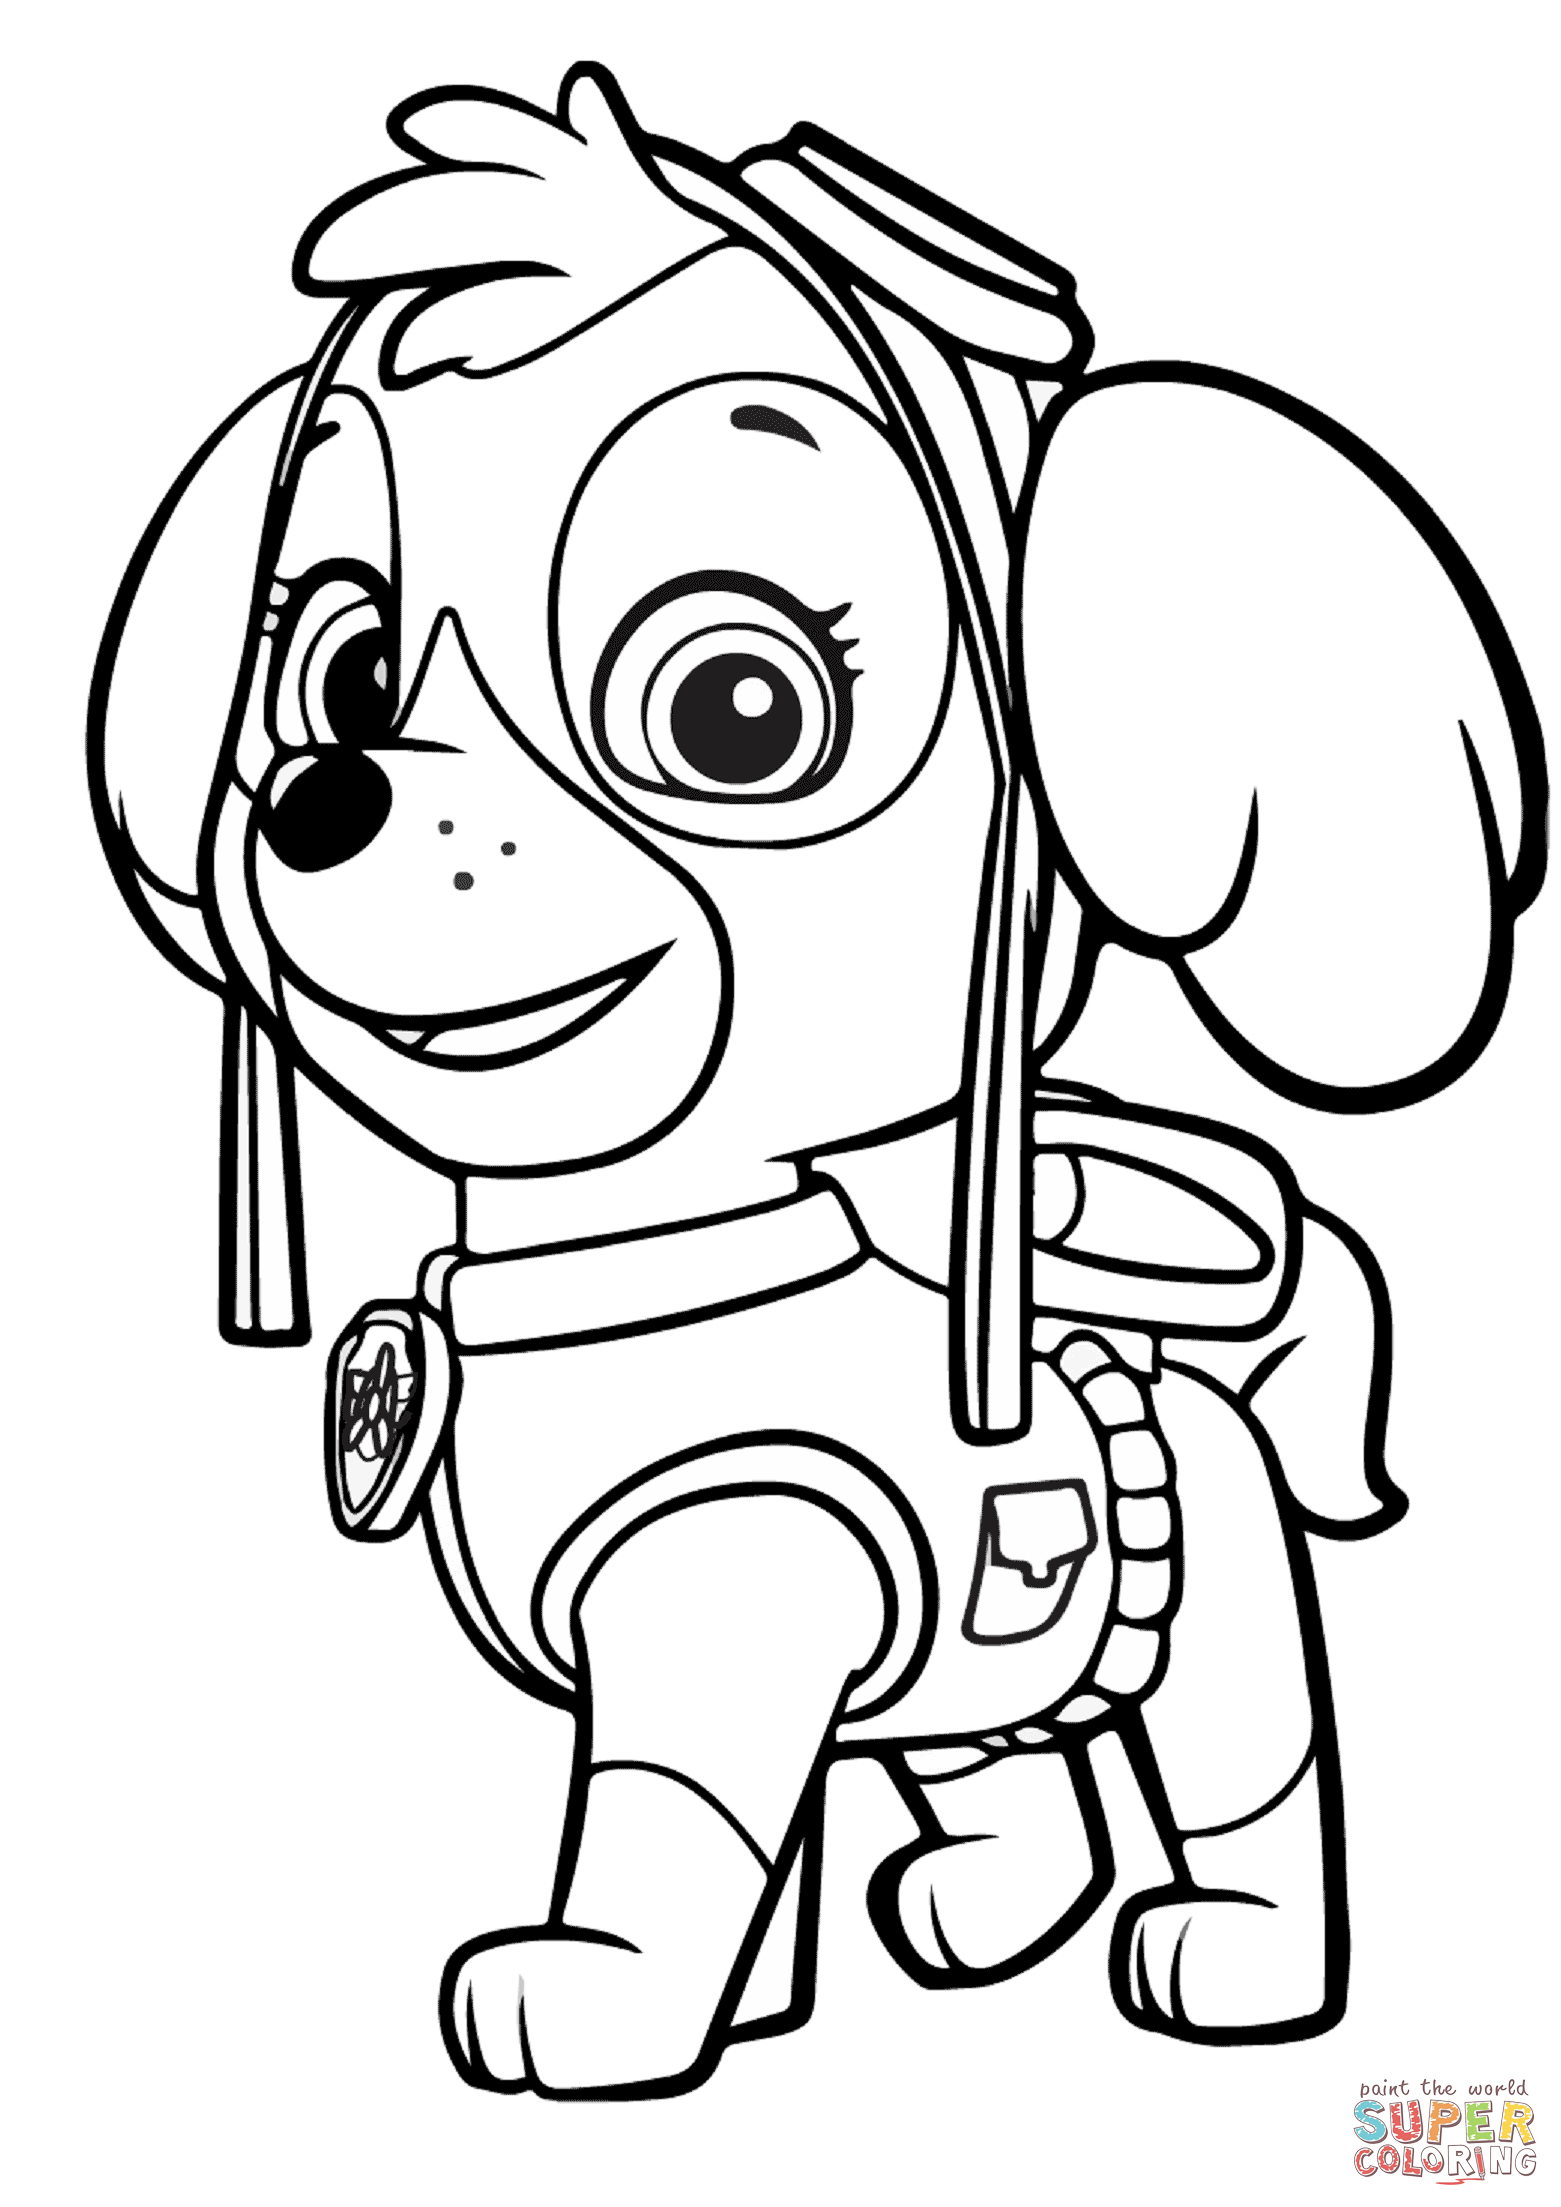 coloring book for kids pdf coloring pages pdf free download on clipartmag for coloring pdf book kids